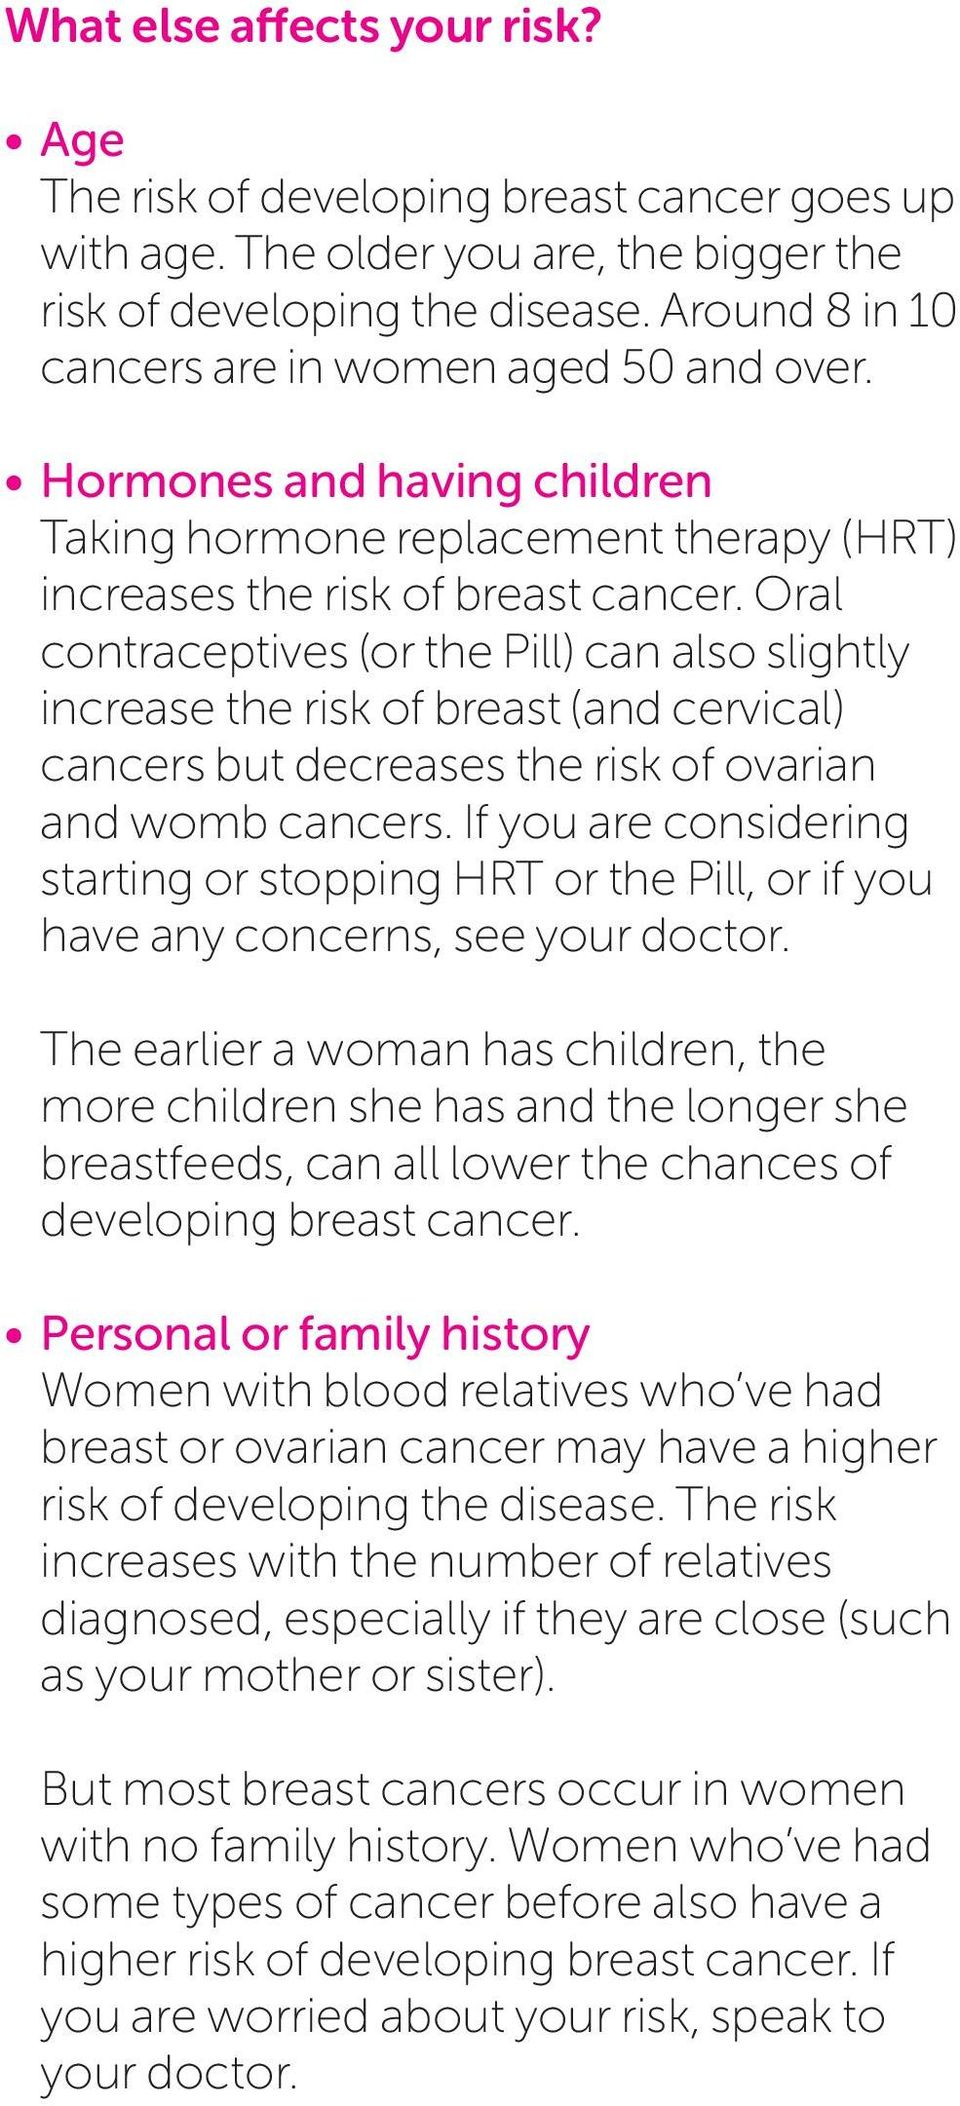 Oral contraceptives (or the Pill) can also slightly increase the risk of breast (and cervical) cancers but decreases the risk of ovarian and womb cancers.